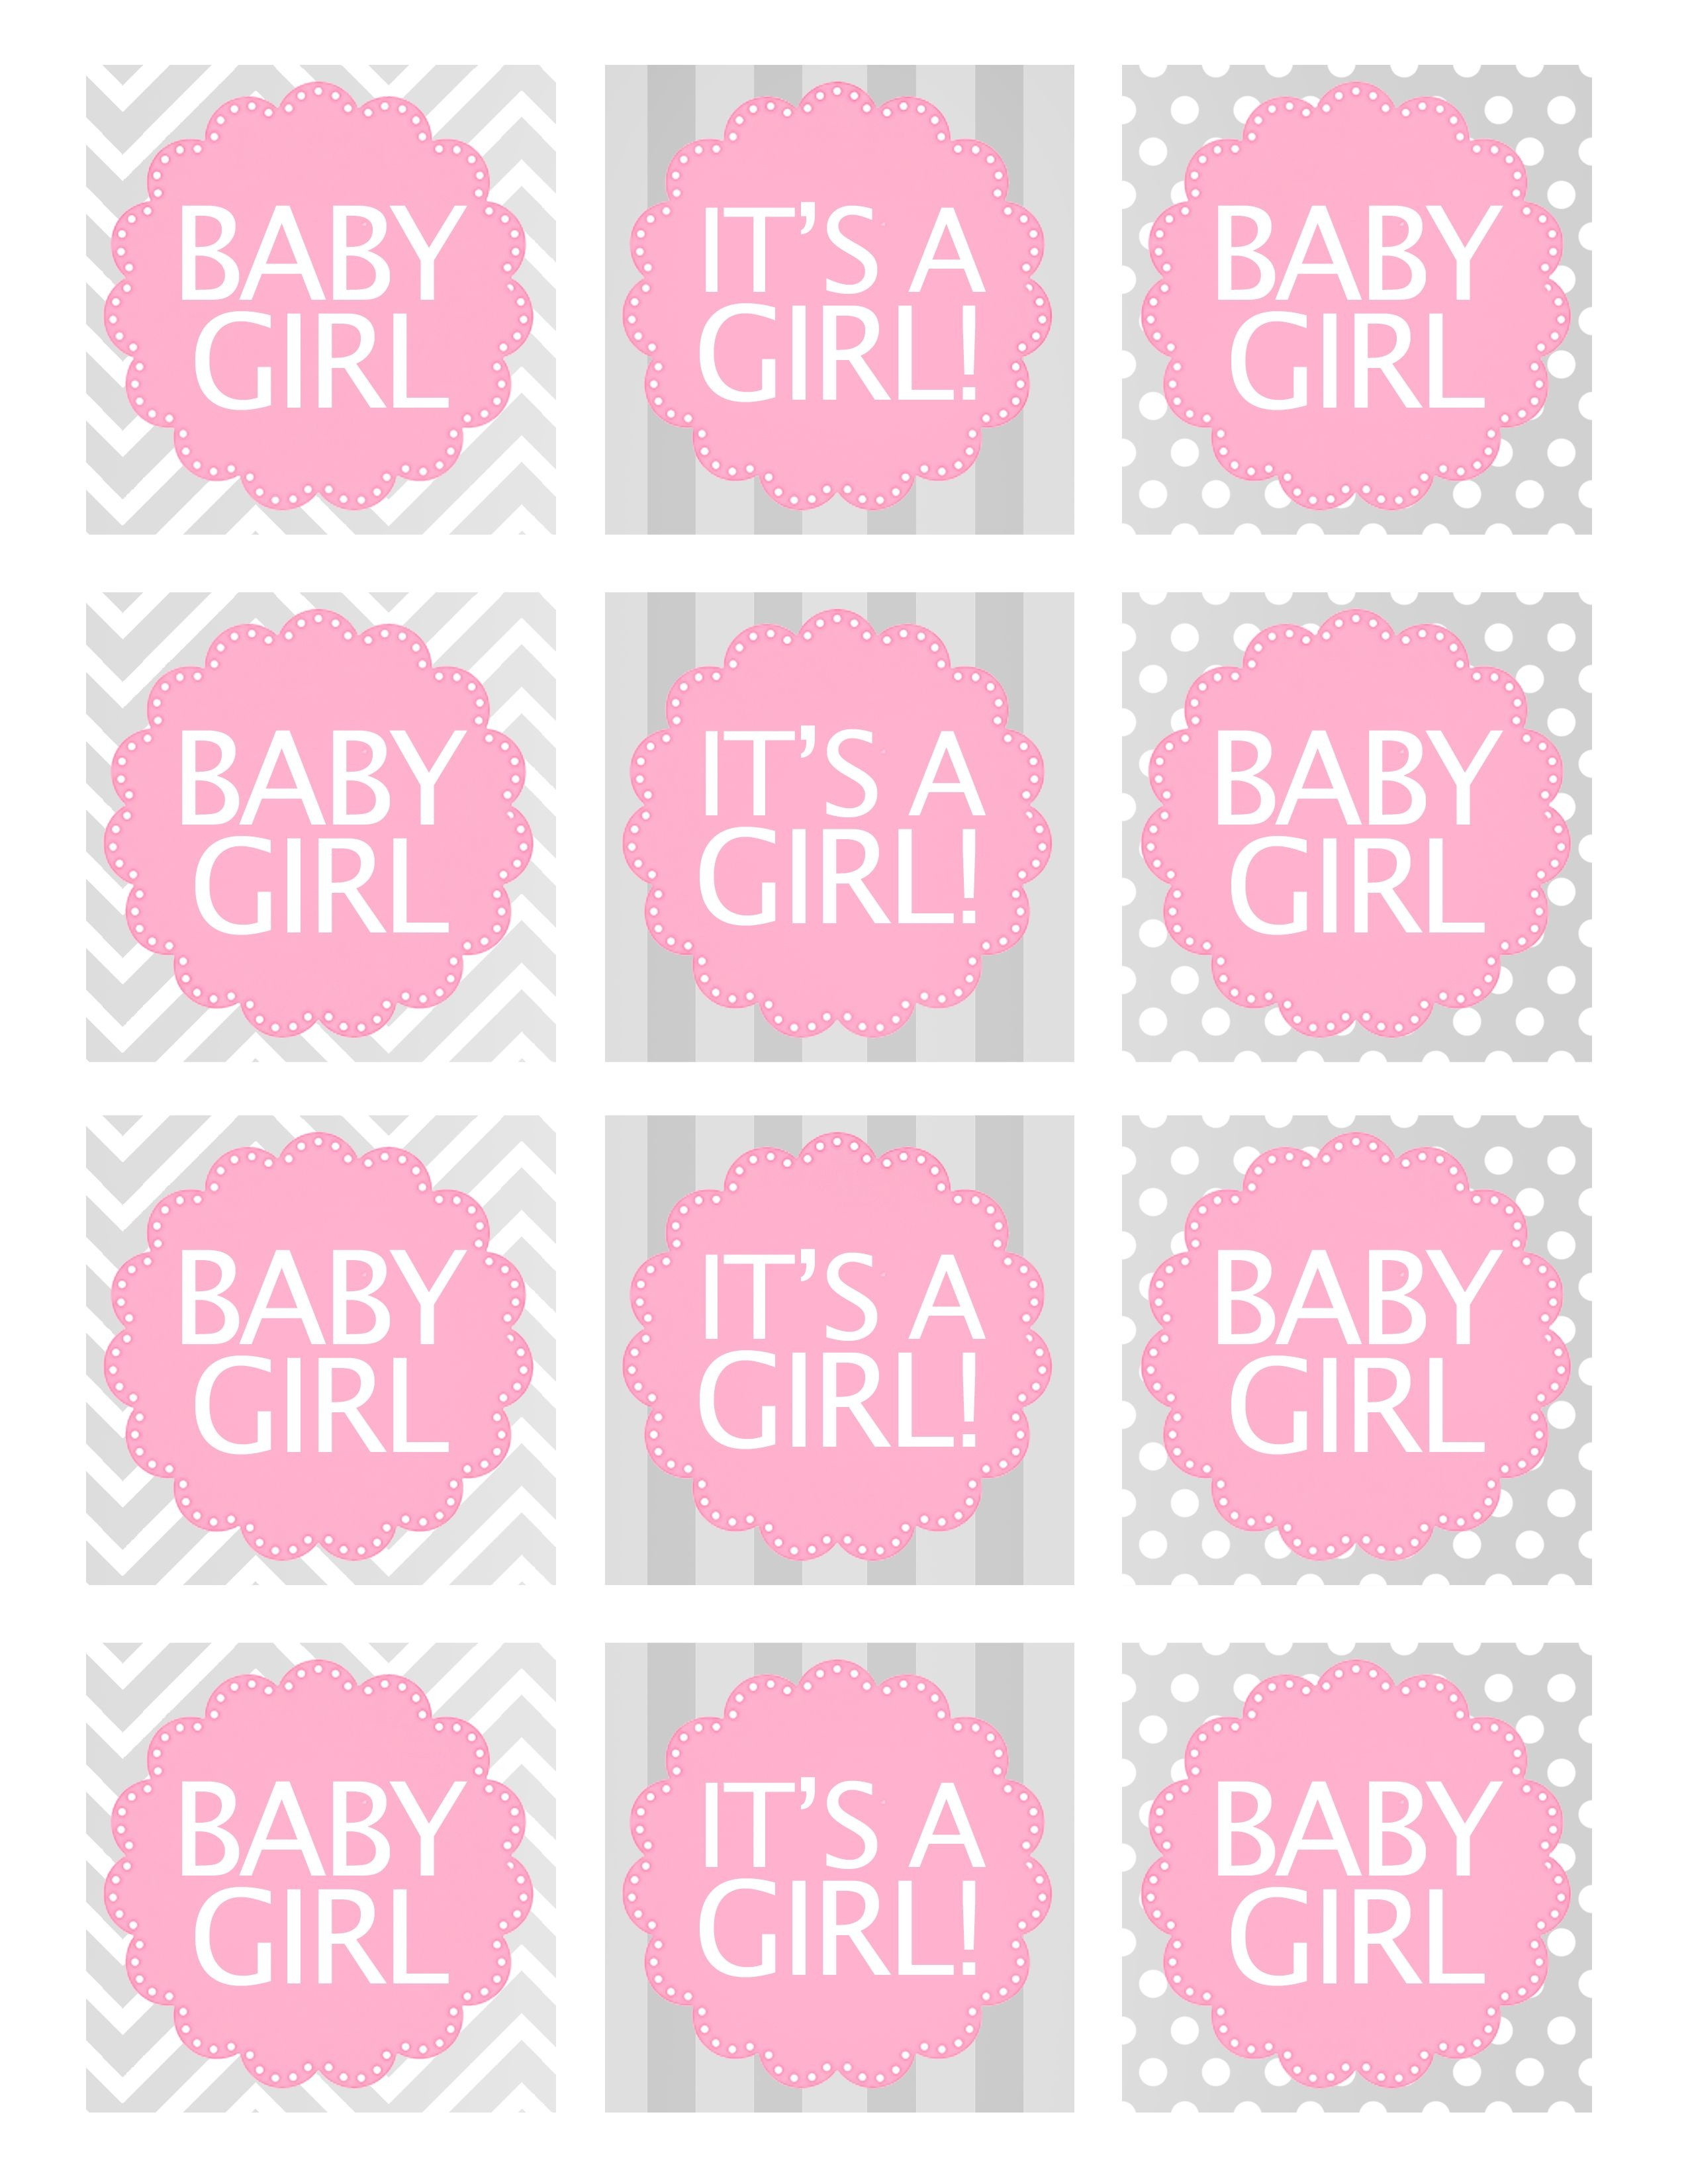 Baby Girl Shower Free Printables   Baby Shower Ideas   Baby Shower - Free Printable Baby Shower Labels And Tags